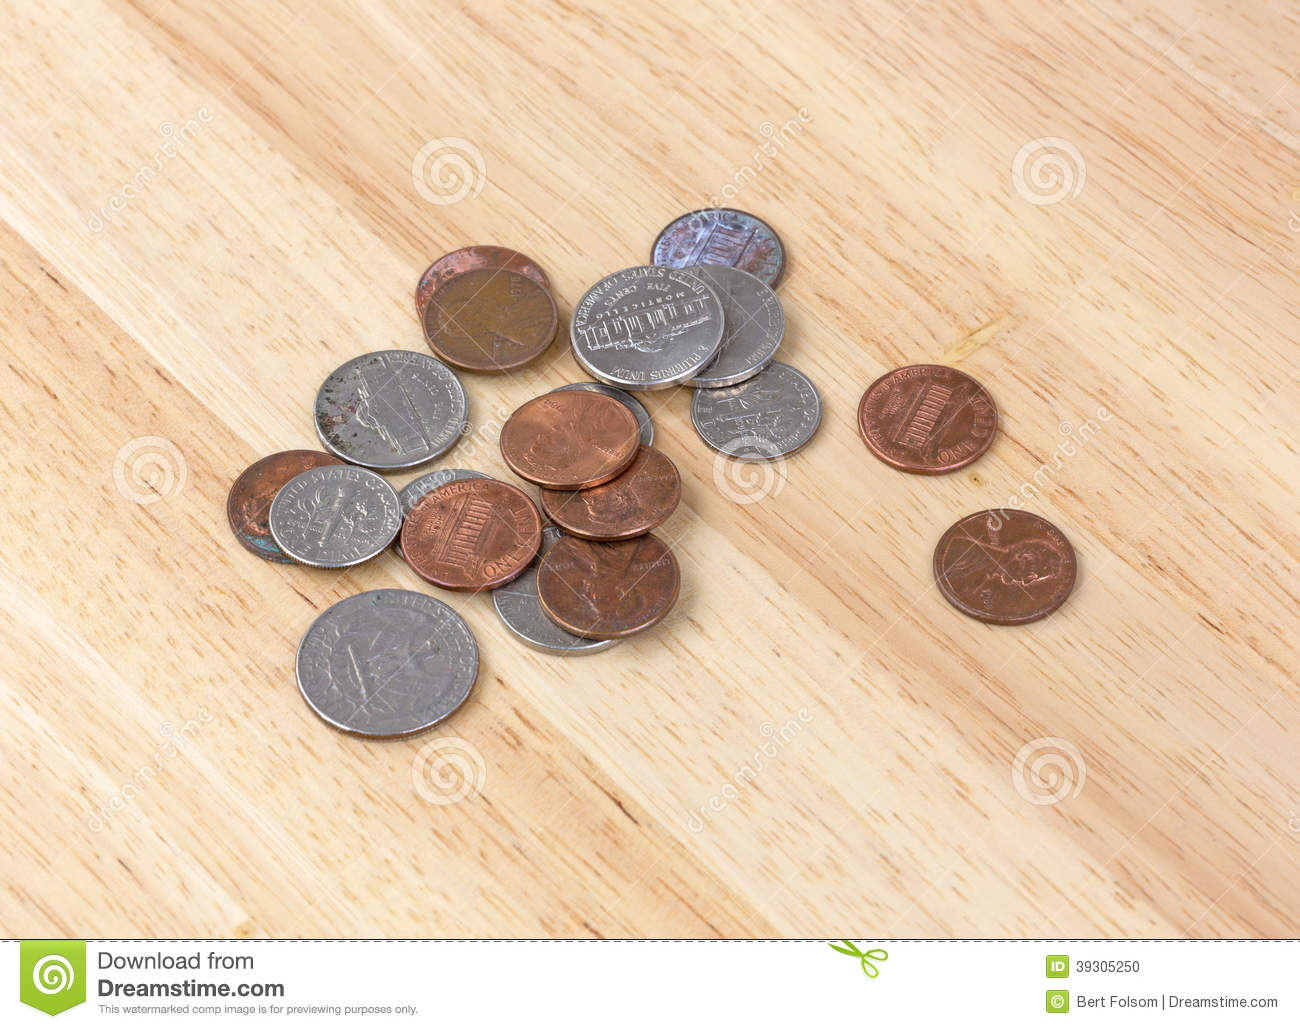 Loose change stock photo  Image of currency, tabletop - 39305250